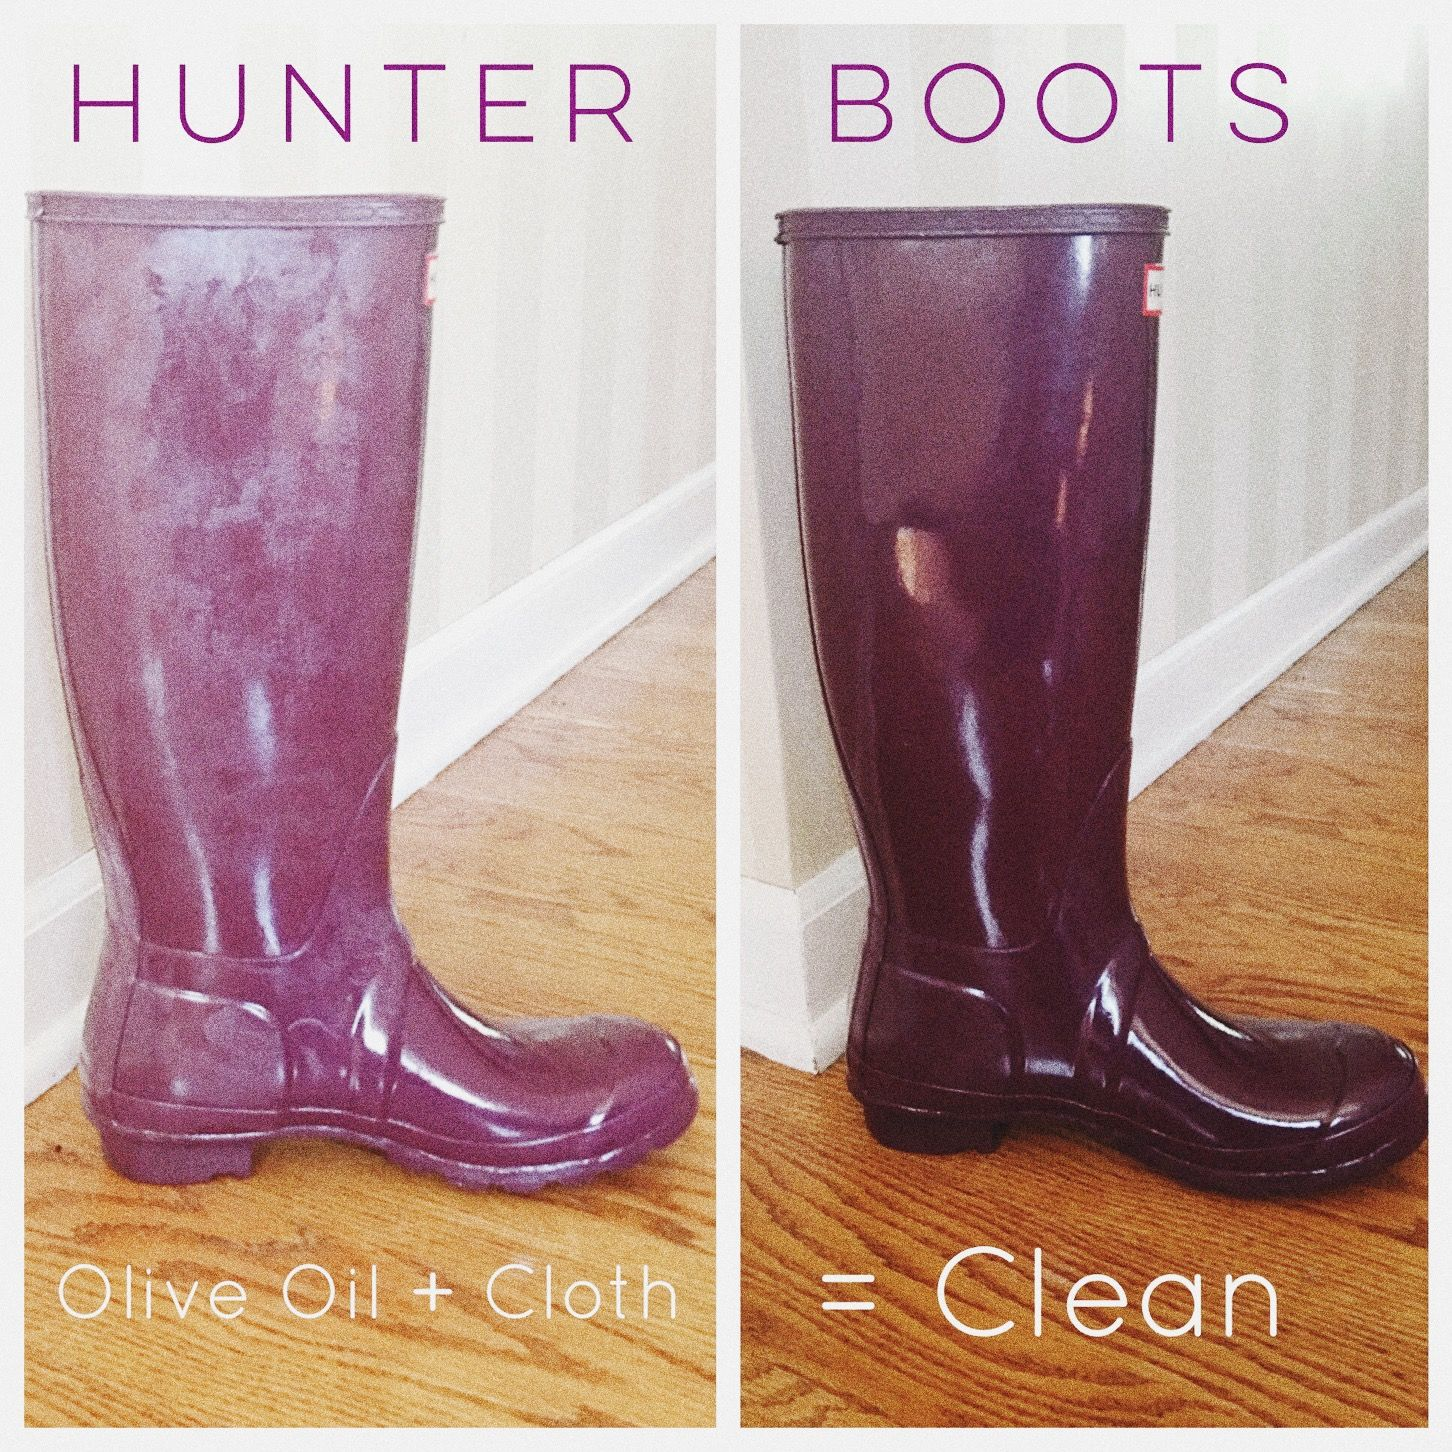 How to Clean Hunter Boots  Hunter boots, Clean hunter boots